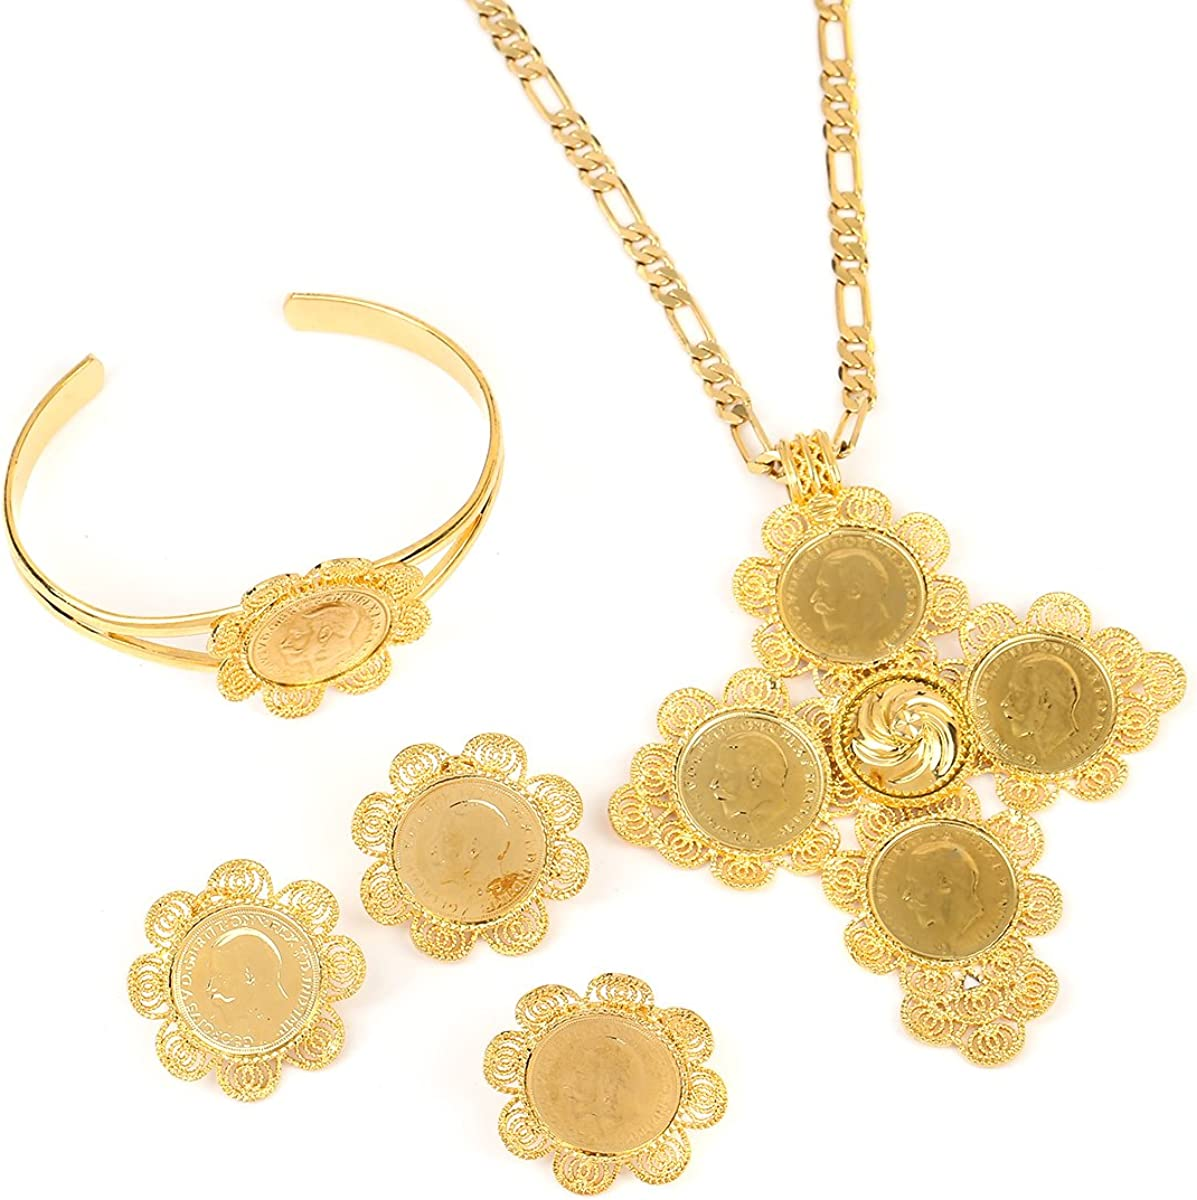 Traditional Ethiopian Coin Wedding Jewelry Sets Bridal Romantic Jewelry for Women